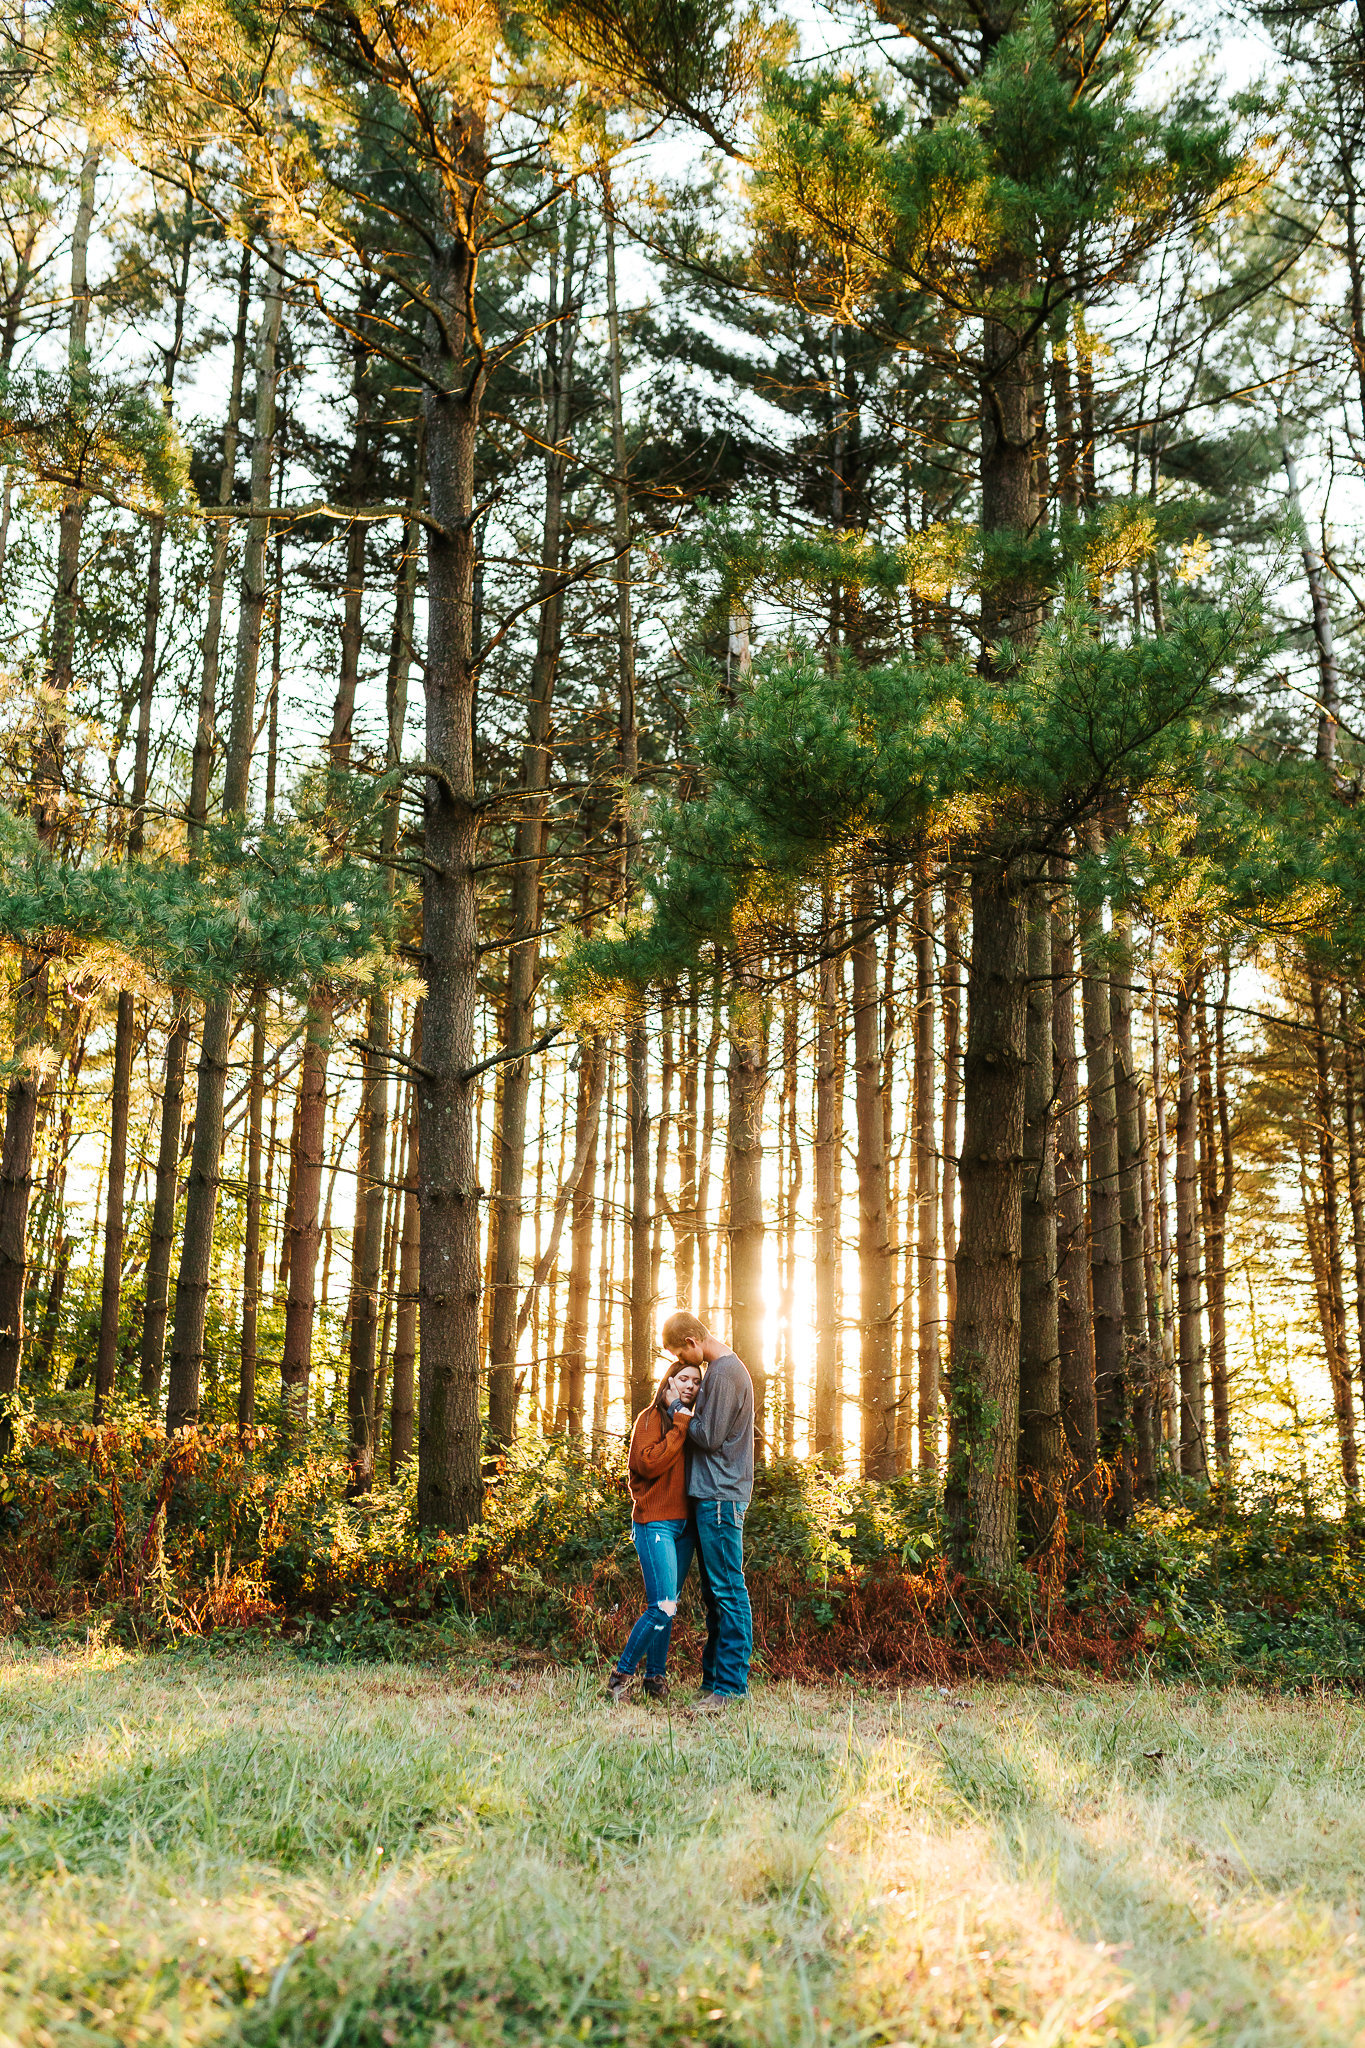 Landon-and-Jade-Autumn-Fall-Illinois-Engagement-Session-Effingham-Vandalia-Edwardsville-Portrait-Photographer- Sarah Neeley Photography-7